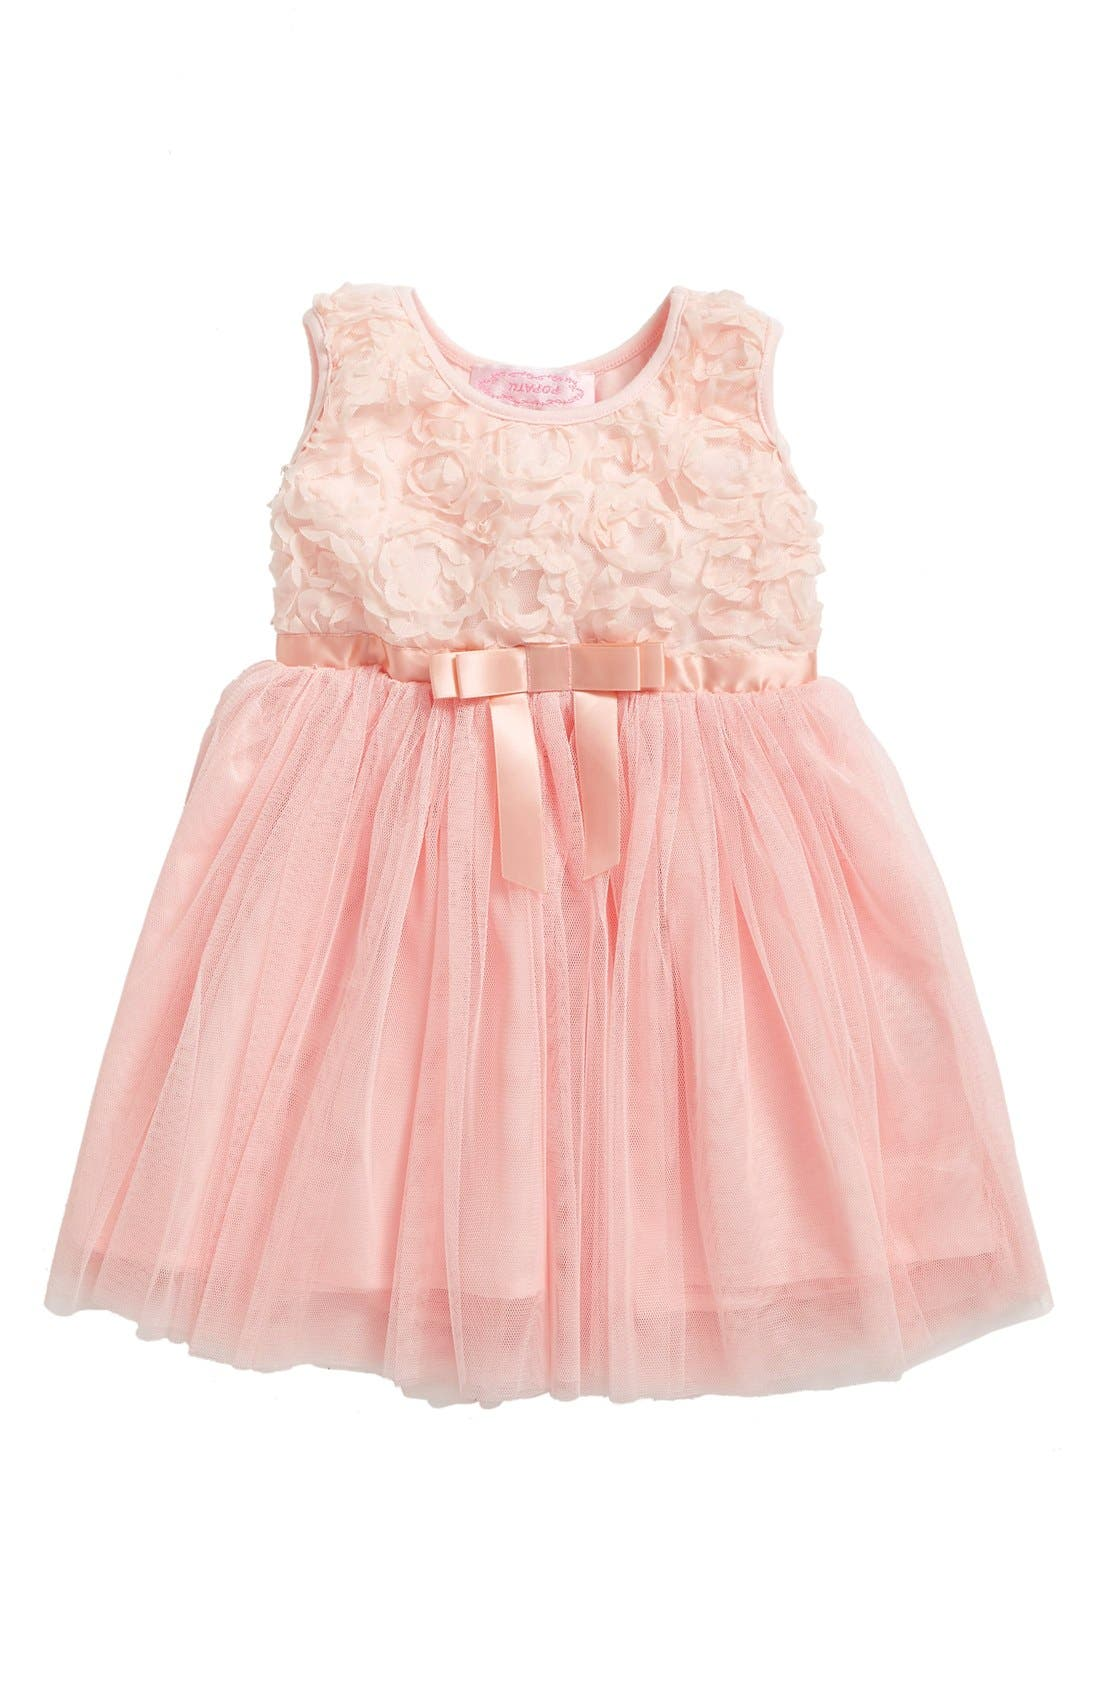 Main Image - Popatu Empire Waist Rosette Dress (Baby Girls)